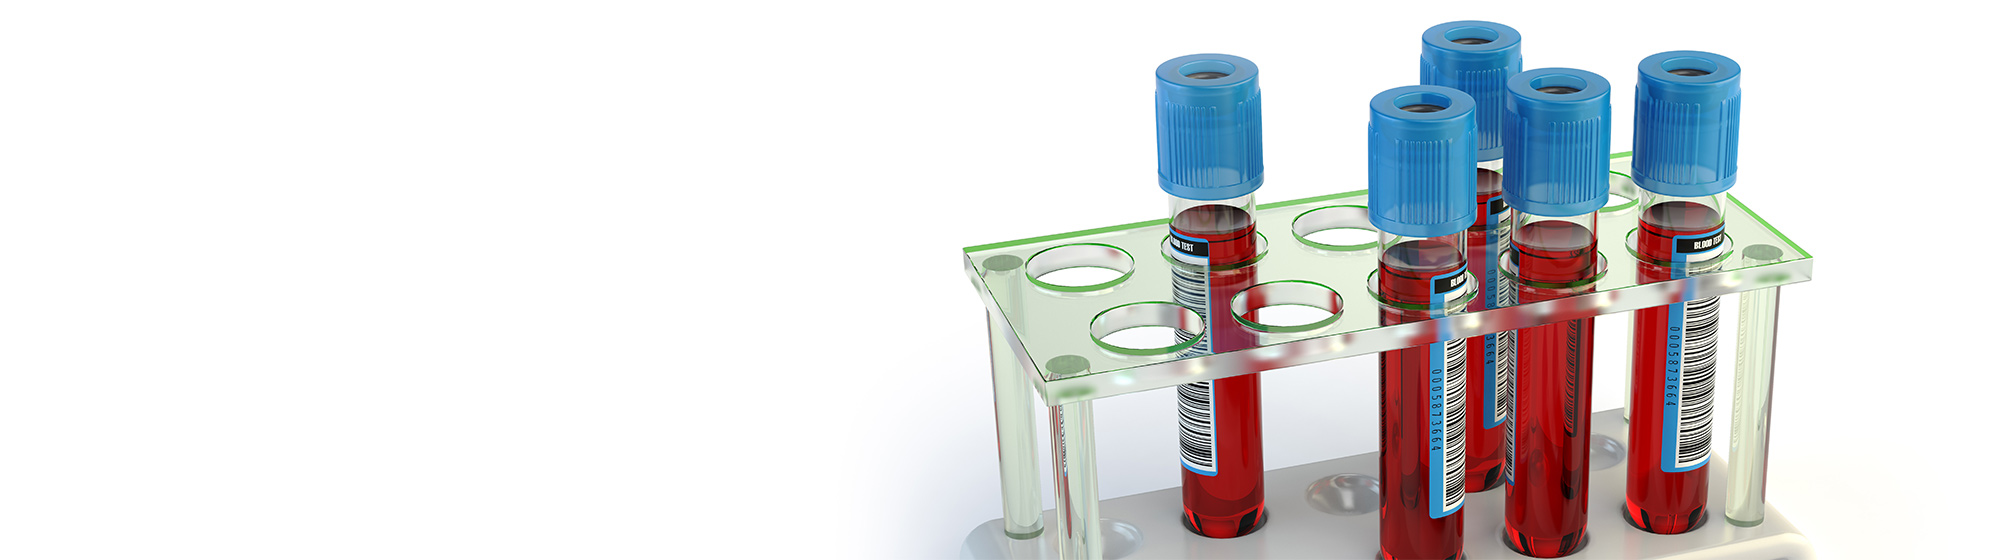 vials of a red substance in a vial holder.